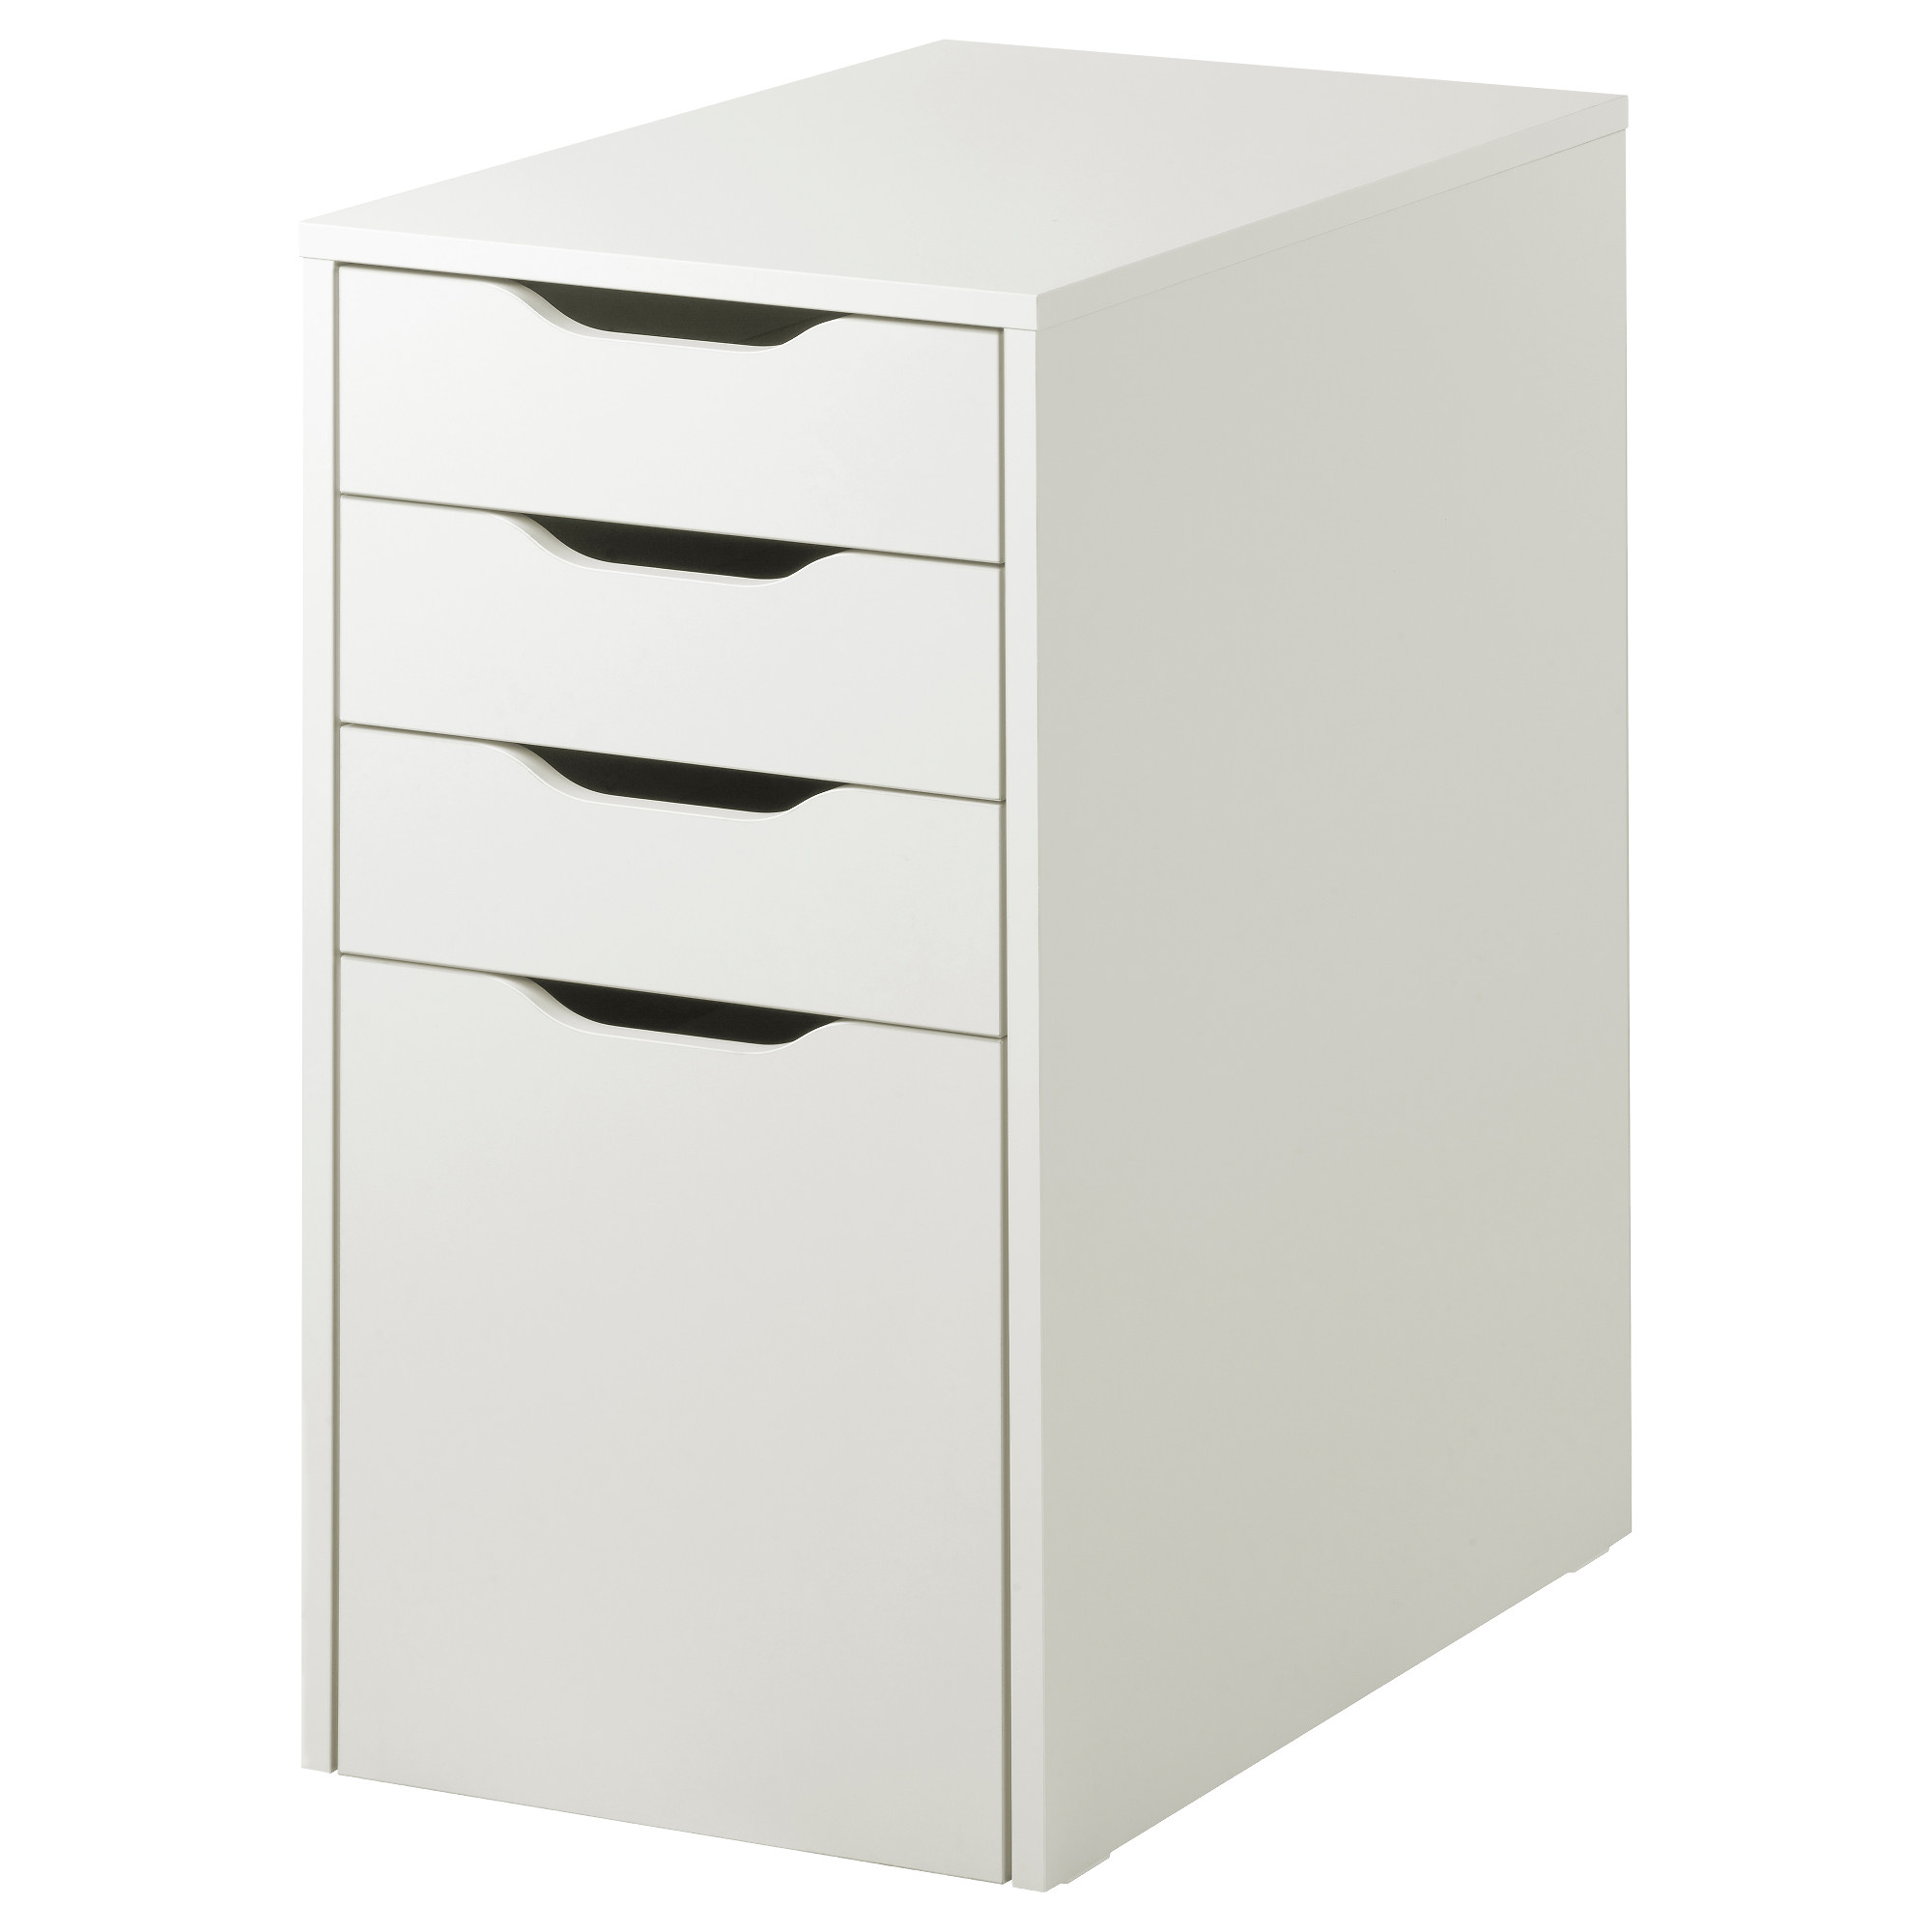 Small File Cabinet Ikea Ikea office filing cabinet ikea office filing cabinet w brint ikea office filing cabinet ikea office filing cabinet w sisterspd